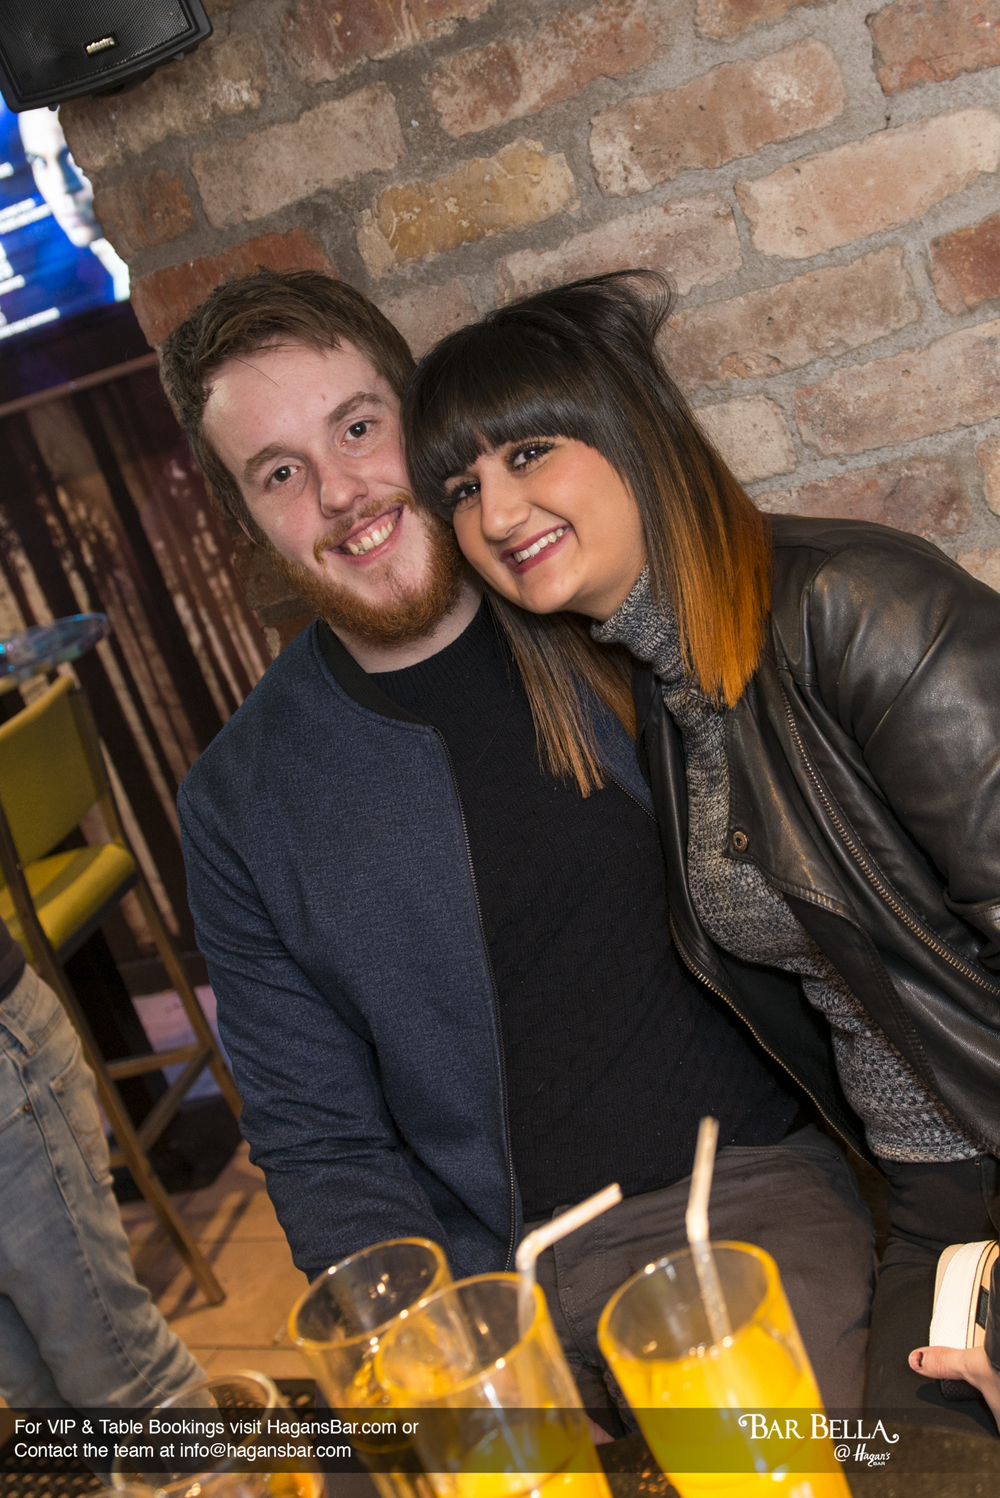 20160228-Hagans Feb 26-27th 2016 DNG-6749.jpg